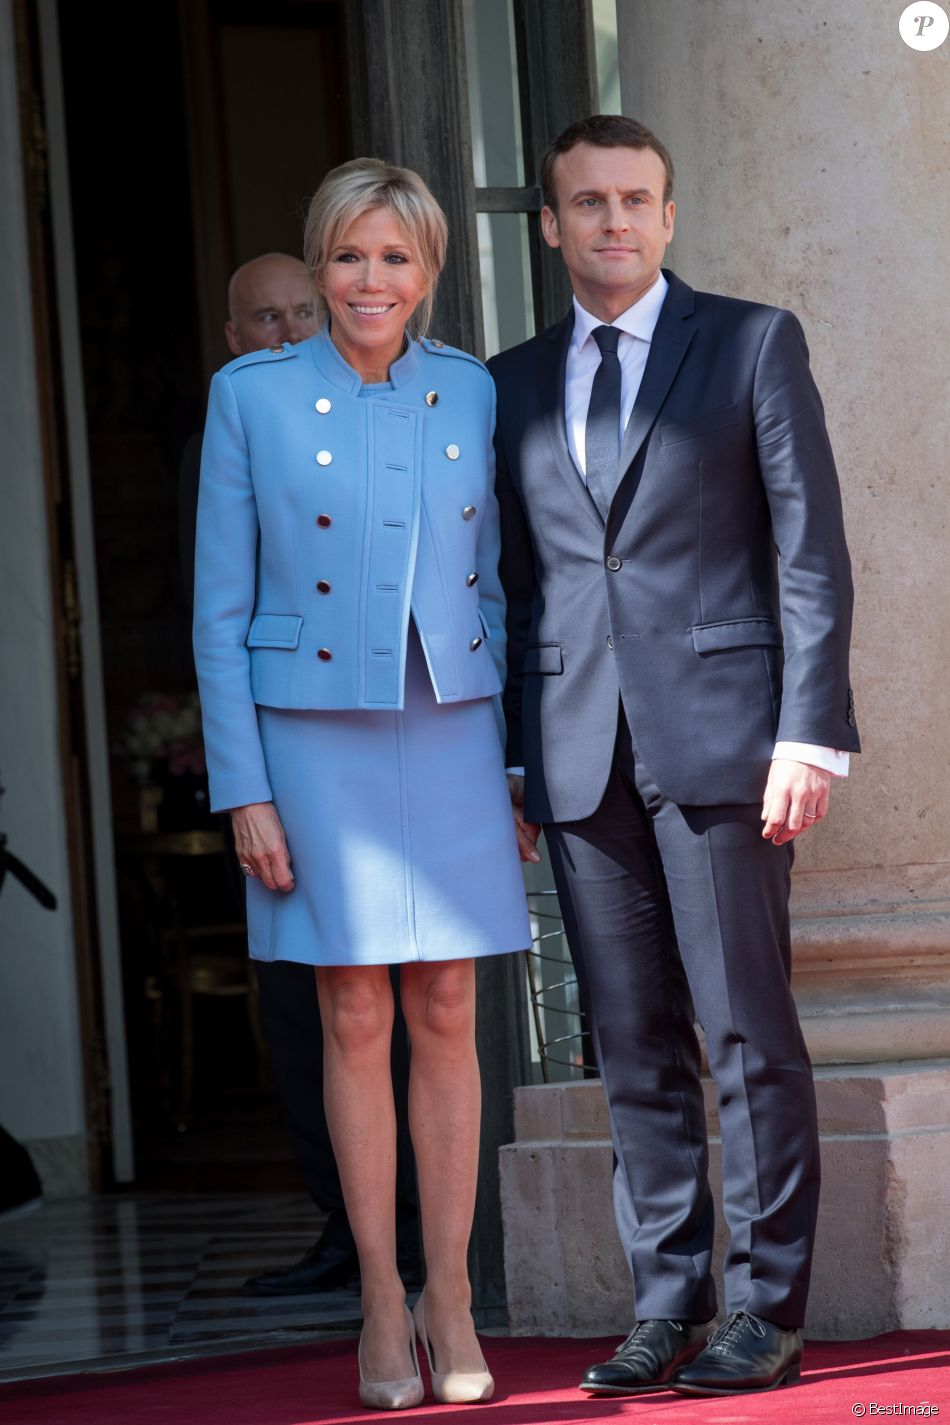 emmanuel macron et sa femme brigitte macron trogneux arriv es au palais de l 39 elys e paris. Black Bedroom Furniture Sets. Home Design Ideas